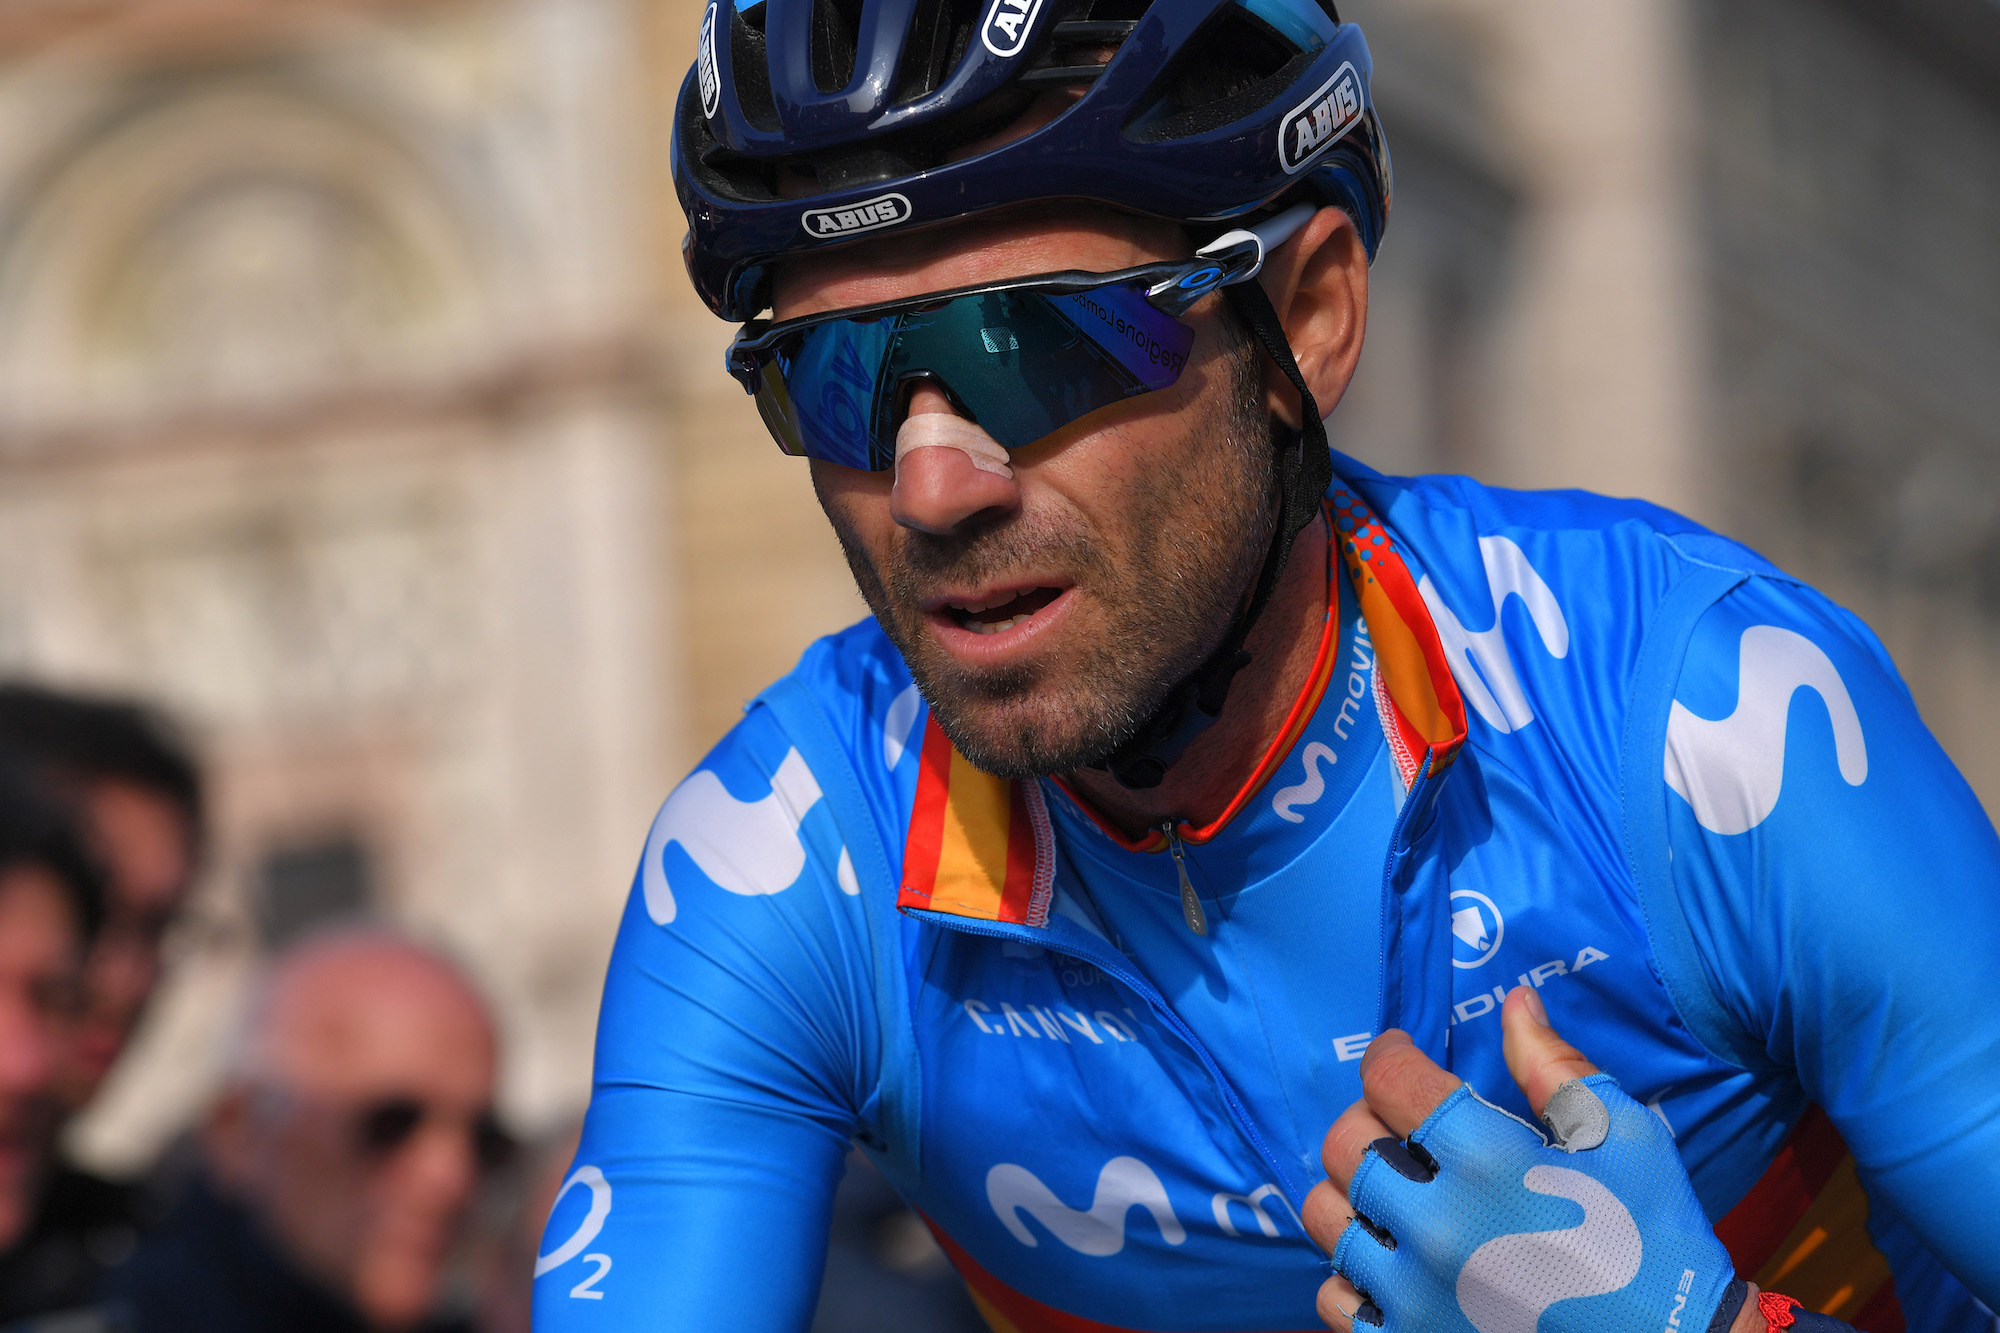 Alejandro Valverde says there's 'room for surprise left' as he continues racing into his forties